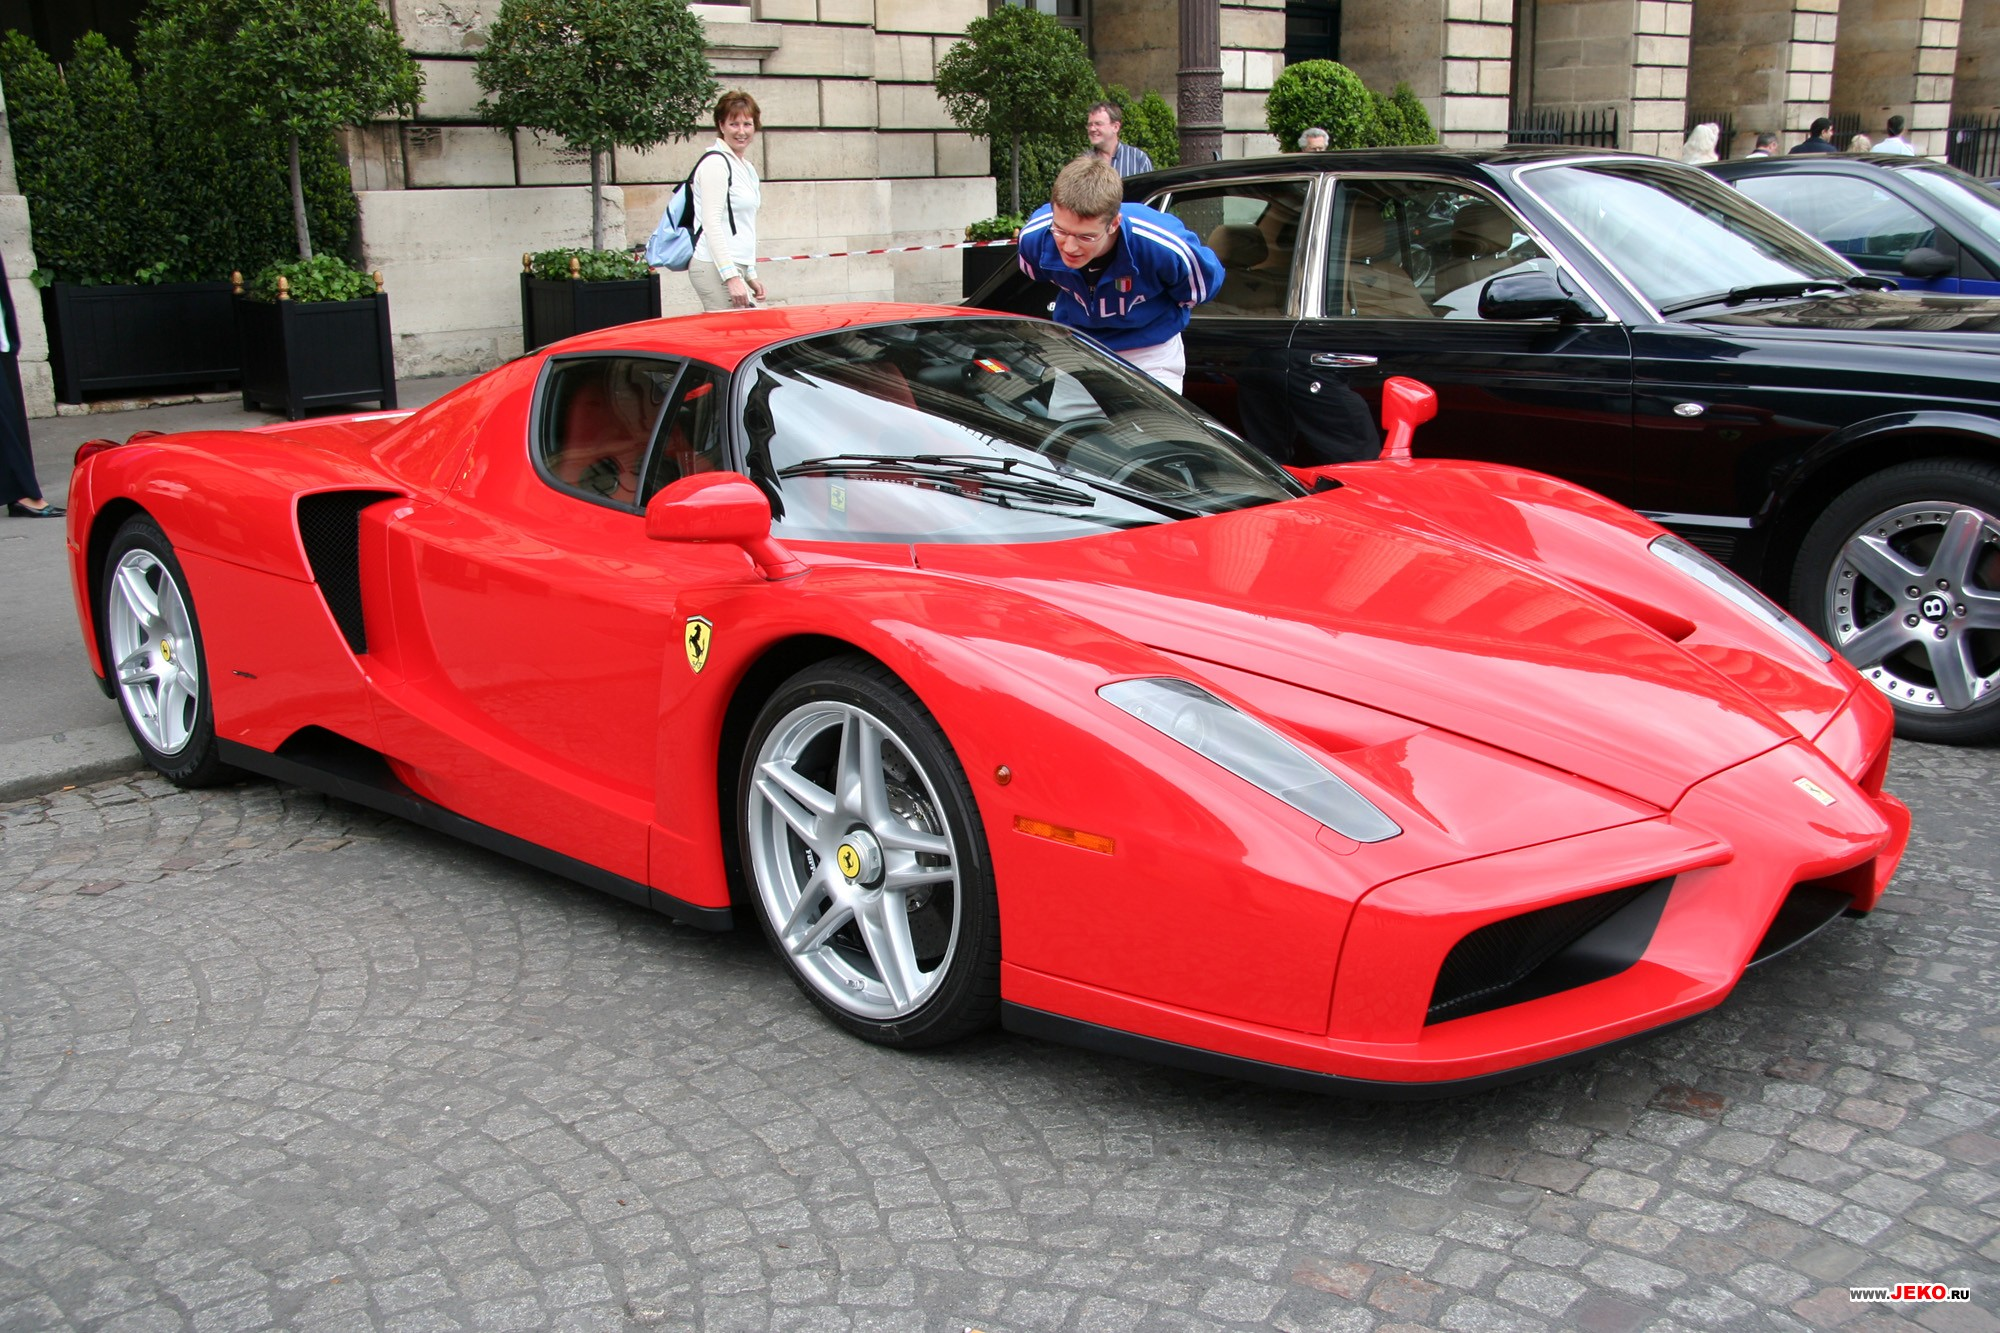 Hot Wallpapers Ferrari Enzo World Cars Wallpaper For Desktop